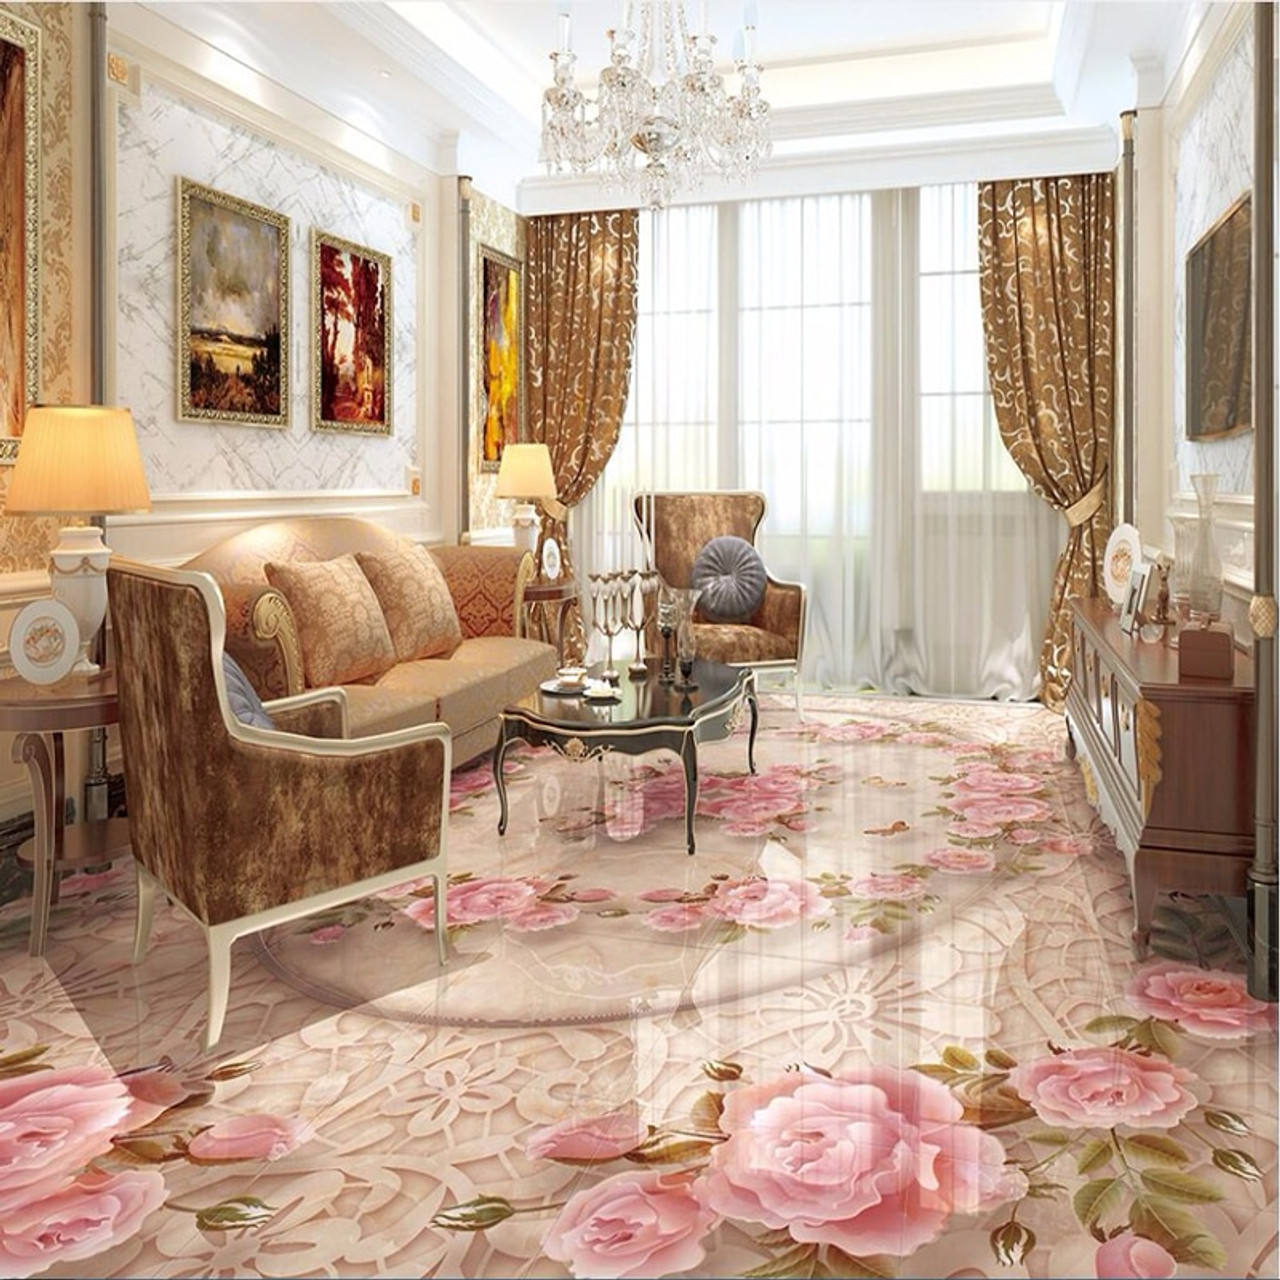 3D Wallpaper European Style Marble Floral Floor Sticker Living Room Bedroom PVC Self Adhesive Waterproof Murals  86065.1548416900